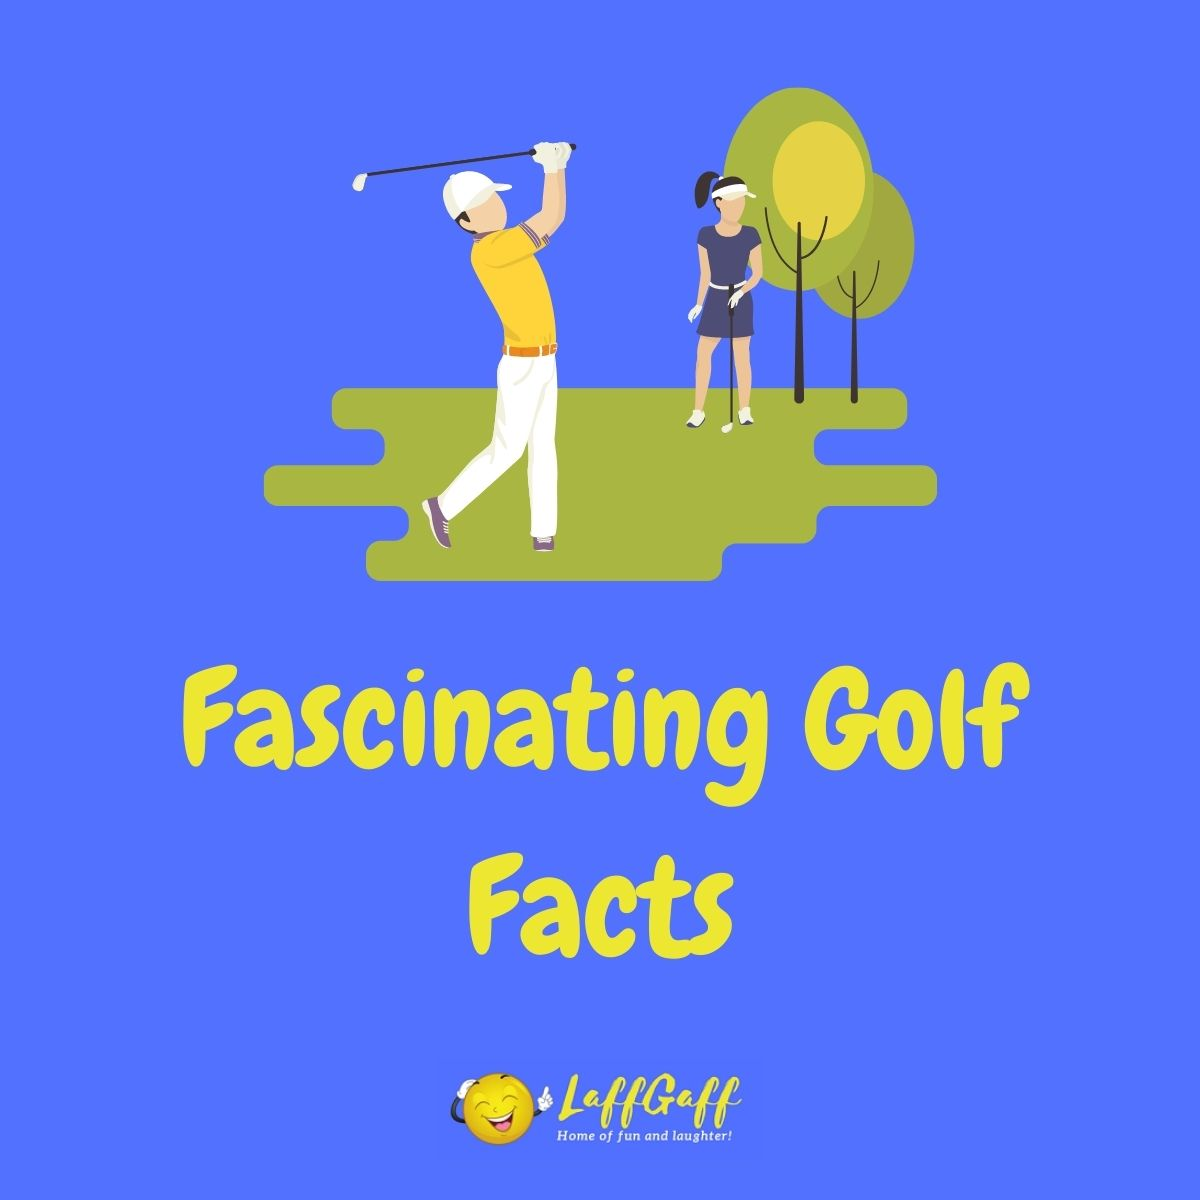 Featured image for a page of fascinating golf facts.